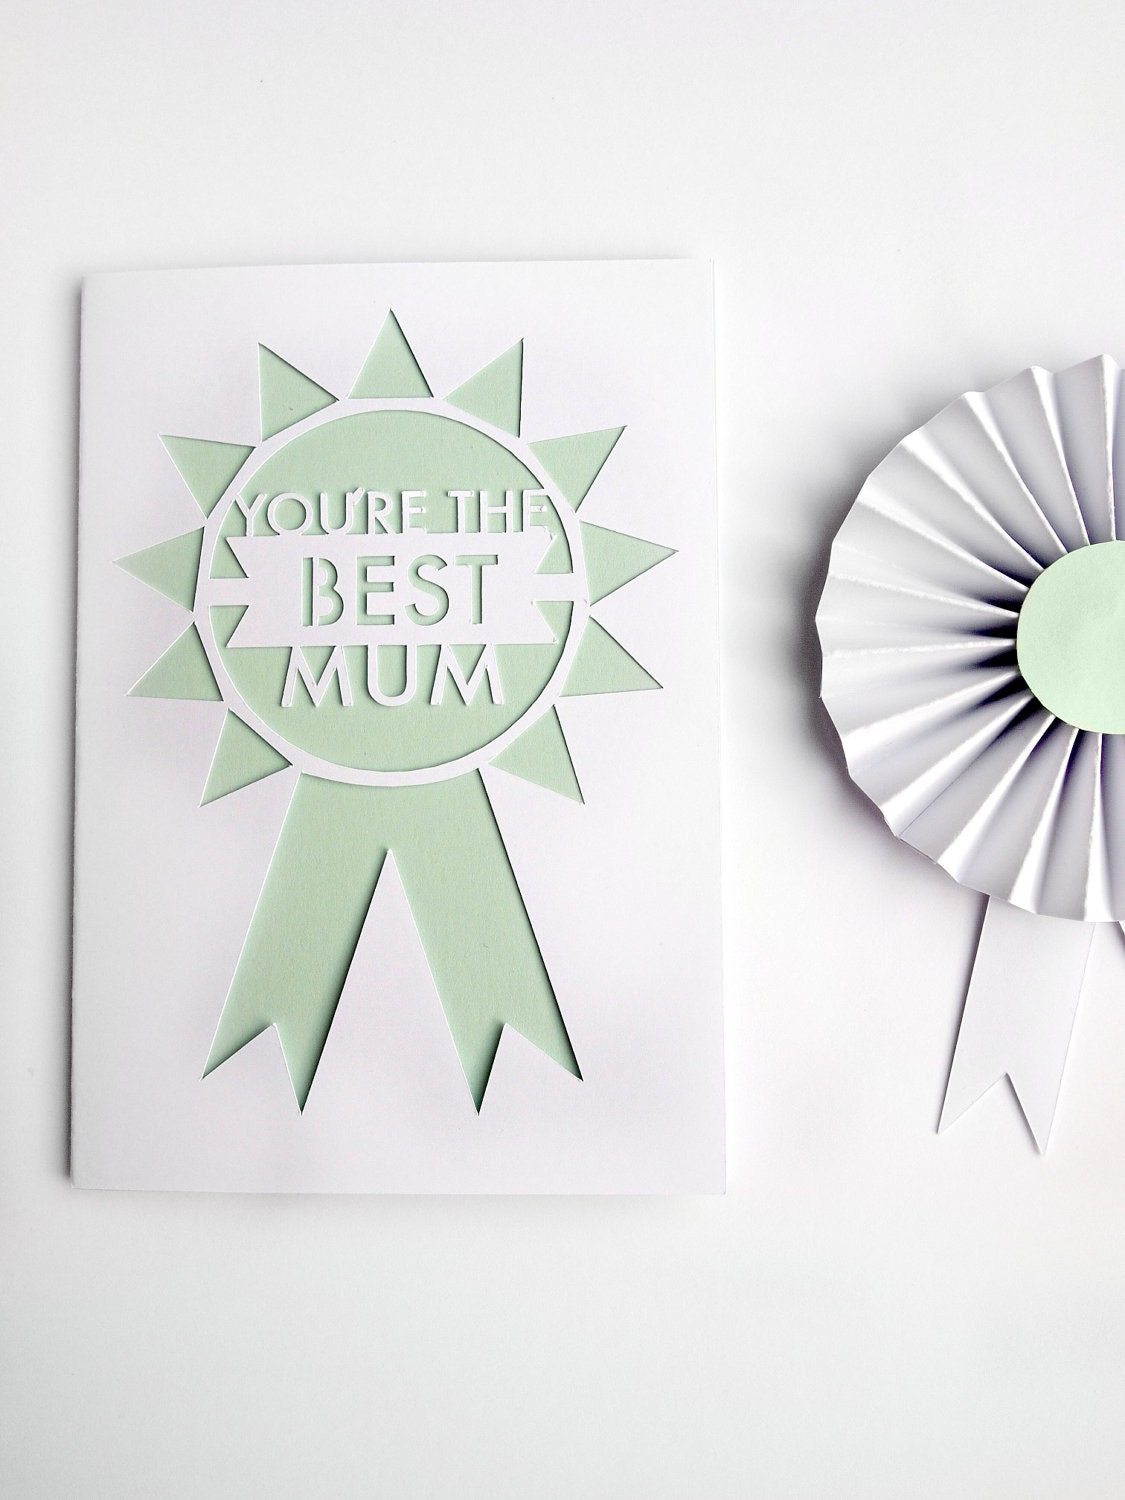 You're the best mum - Rosette mothers day card